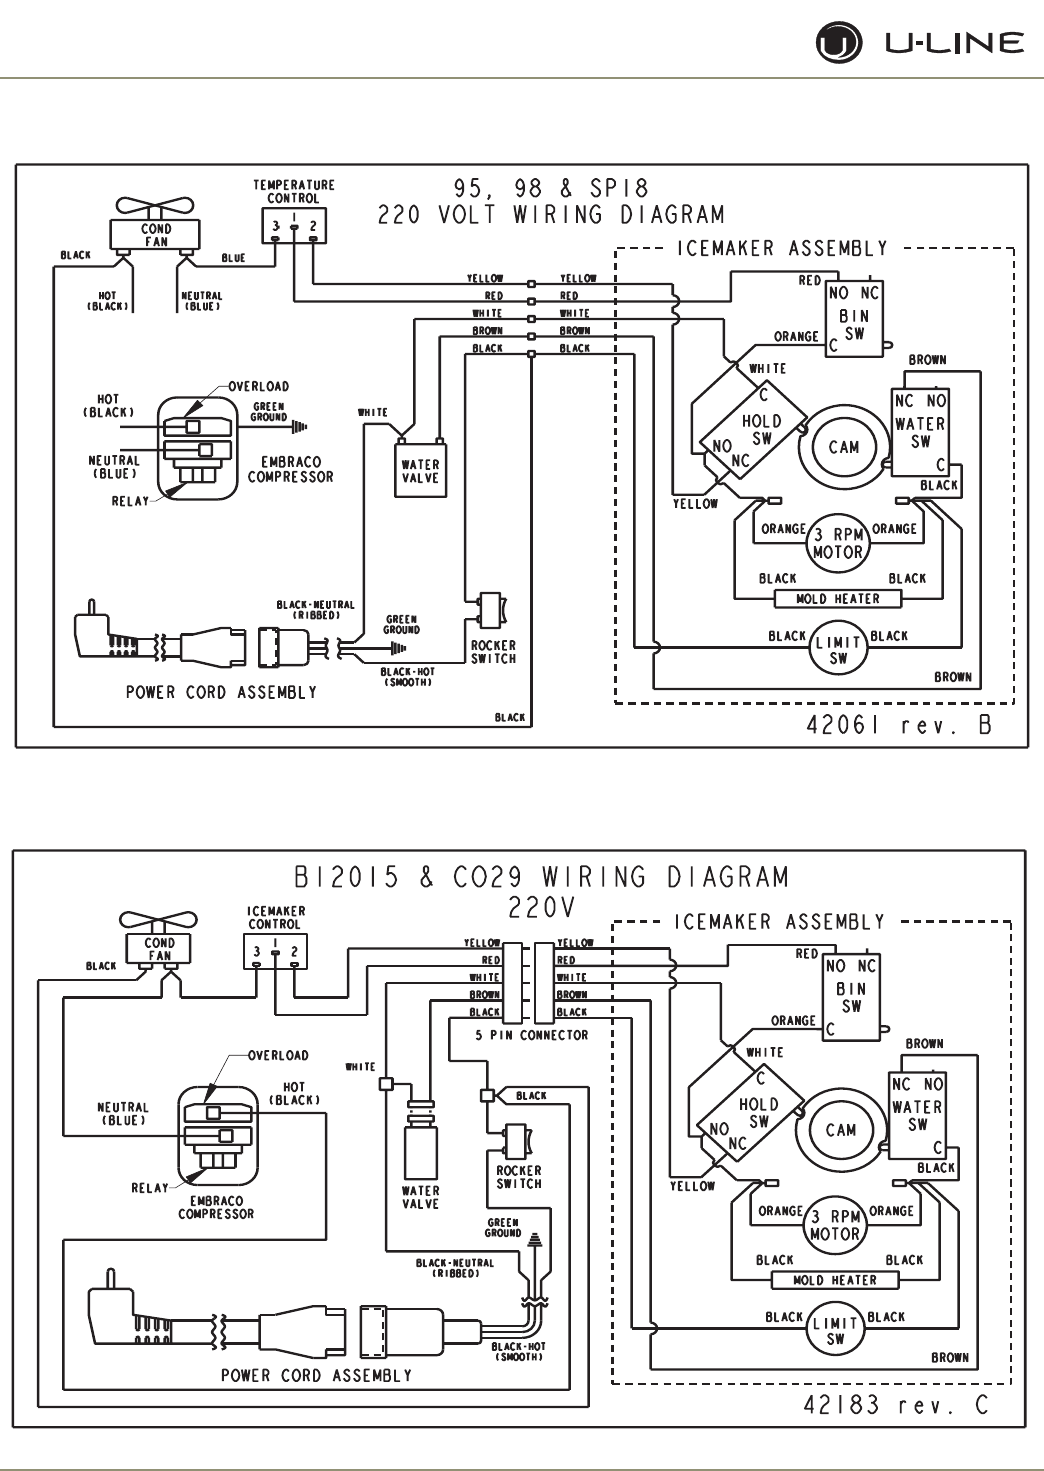 U Line Ice Maker Ada15Im Users Manual Front_Cover_30219 U Line Ice Maker Wiring Diagram on refrigerator wiring diagram, dishwasher wiring diagram, maytag dryer wiring diagram, trash compactor wiring diagram, ice maker schematic diagram, garbage disposal wiring diagram, microwave wiring diagram,